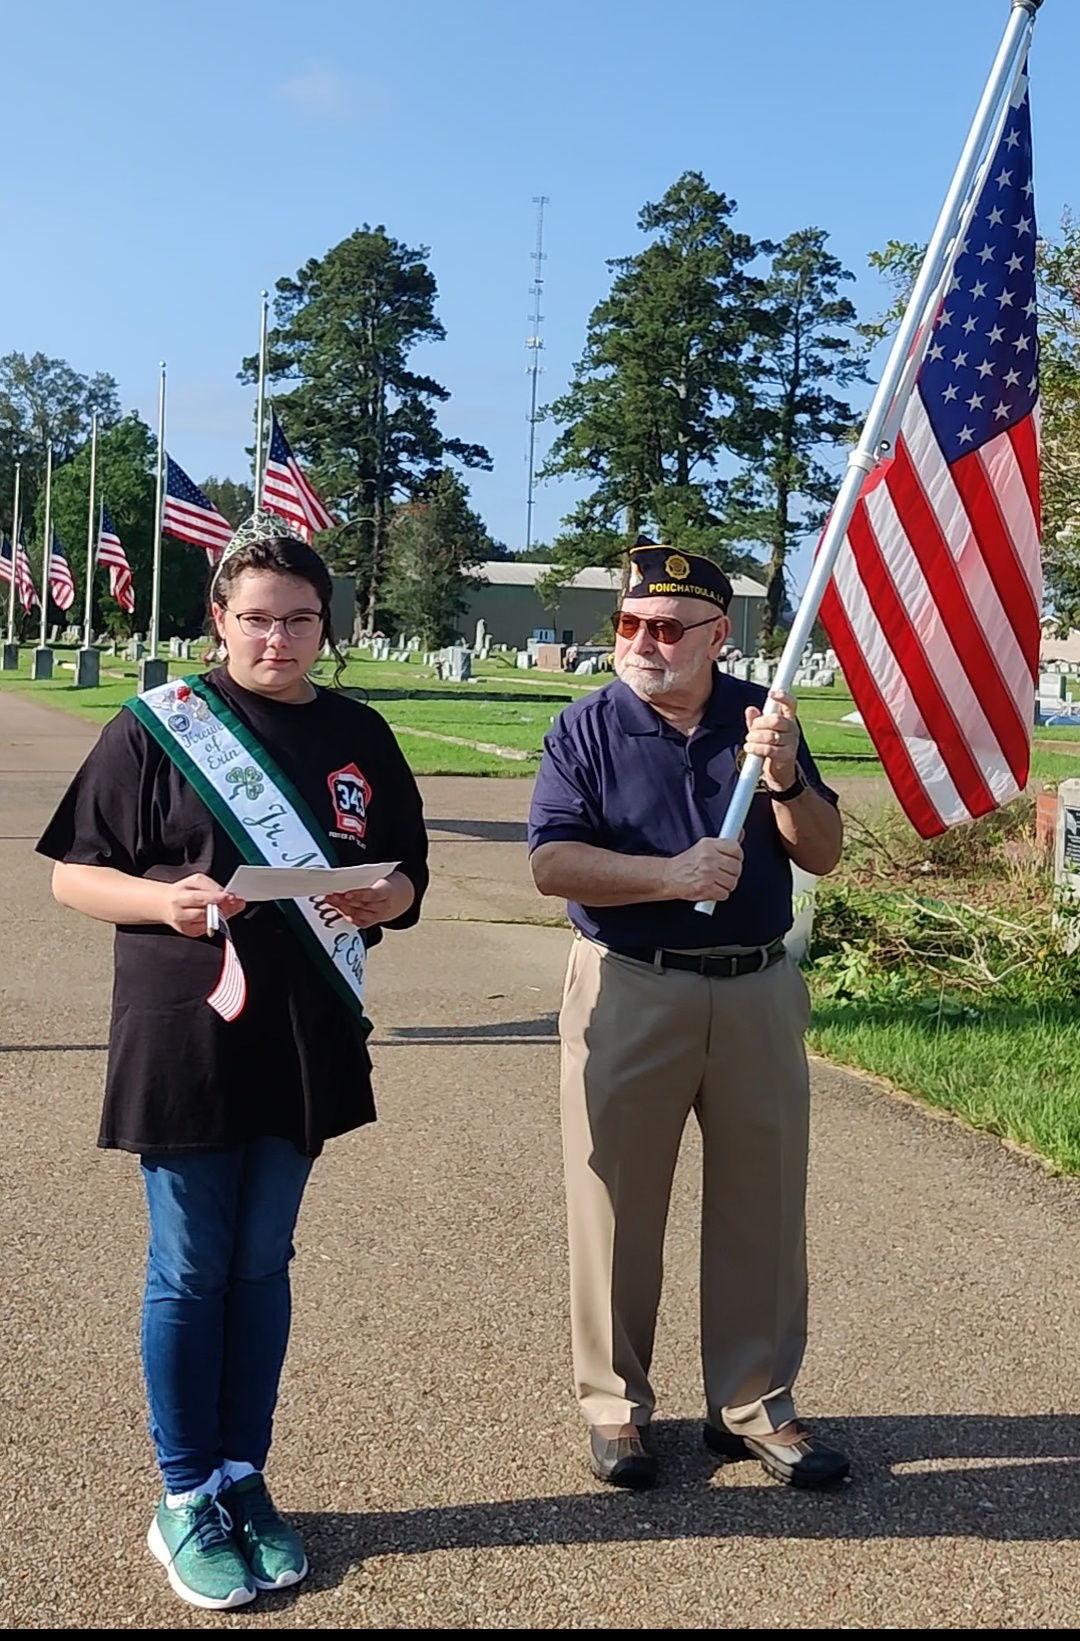 Erin joins Post 47 in flag waving event